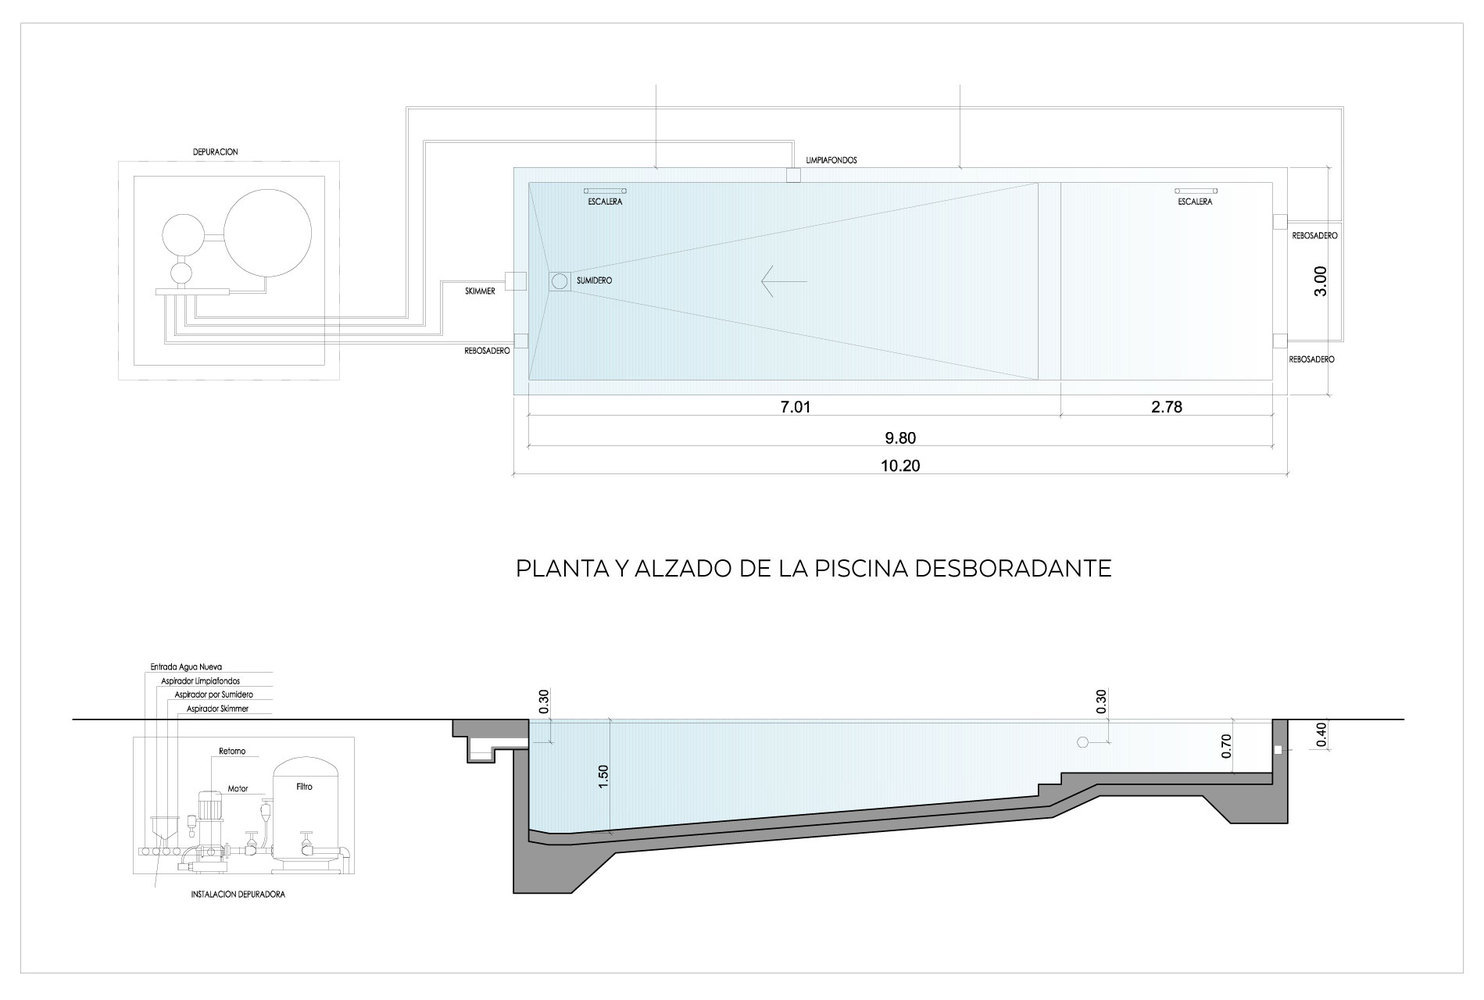 Gallery of Infinity Pools in 15 Architecture Projects - 18 on air conditioning schematic diagram, infinity swimming pool designs, natural swimming pool diagram, spa schematic diagram, swimming pool plumbing isometric diagram,